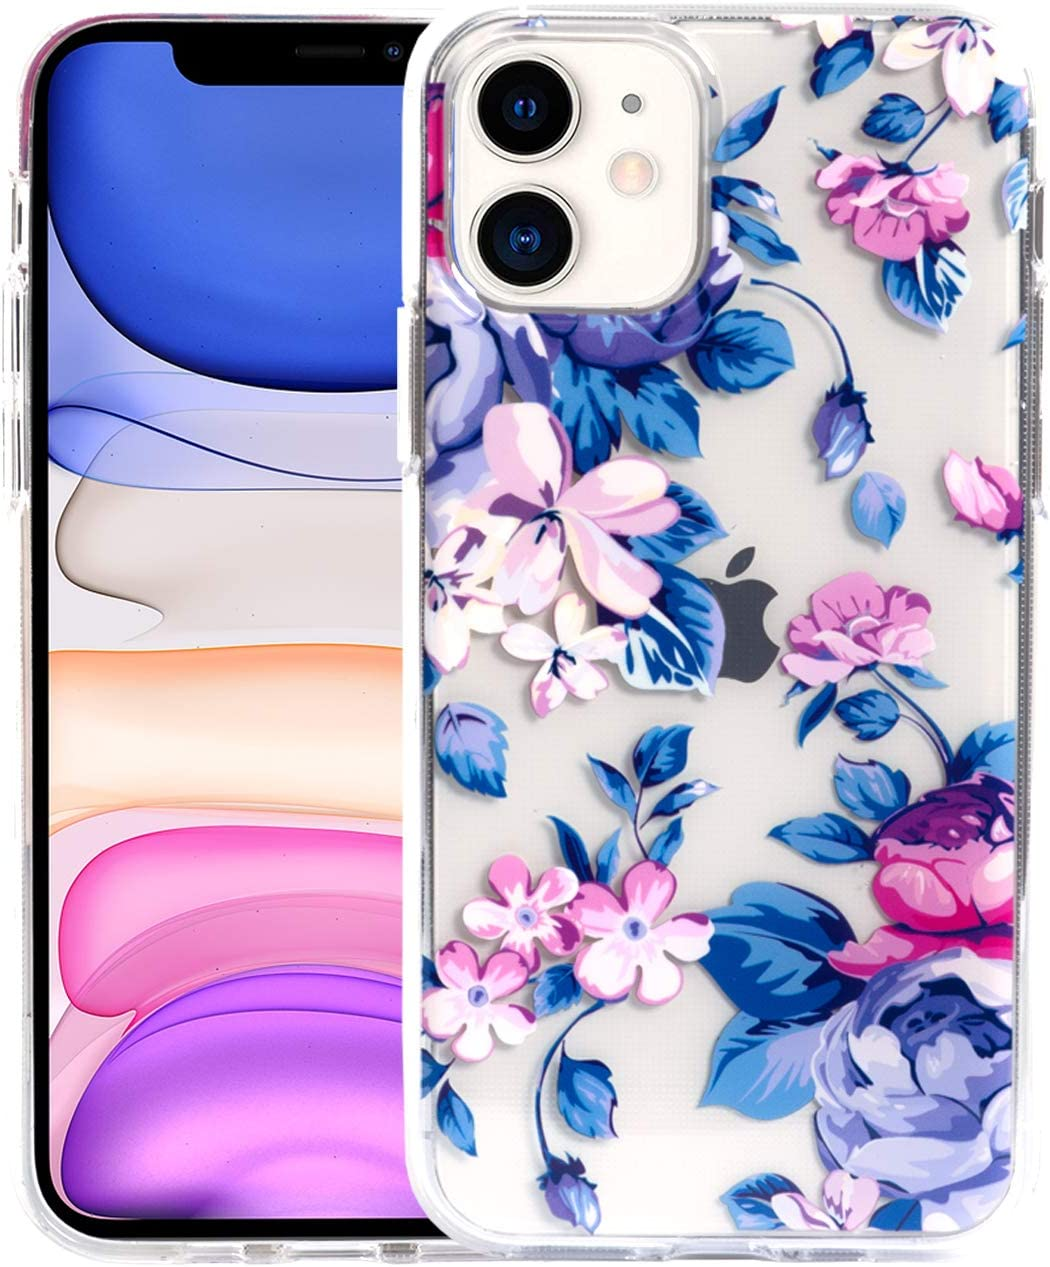 """Sephonie Flower Case for iPhone 11 (6.1""""), Floral Pattern Clear Slim Fit Ultra-Thin Girly Design, Shockproof Protective Hard PC Back with Soft TPU Bumper Phone Cover for Girls and Women 